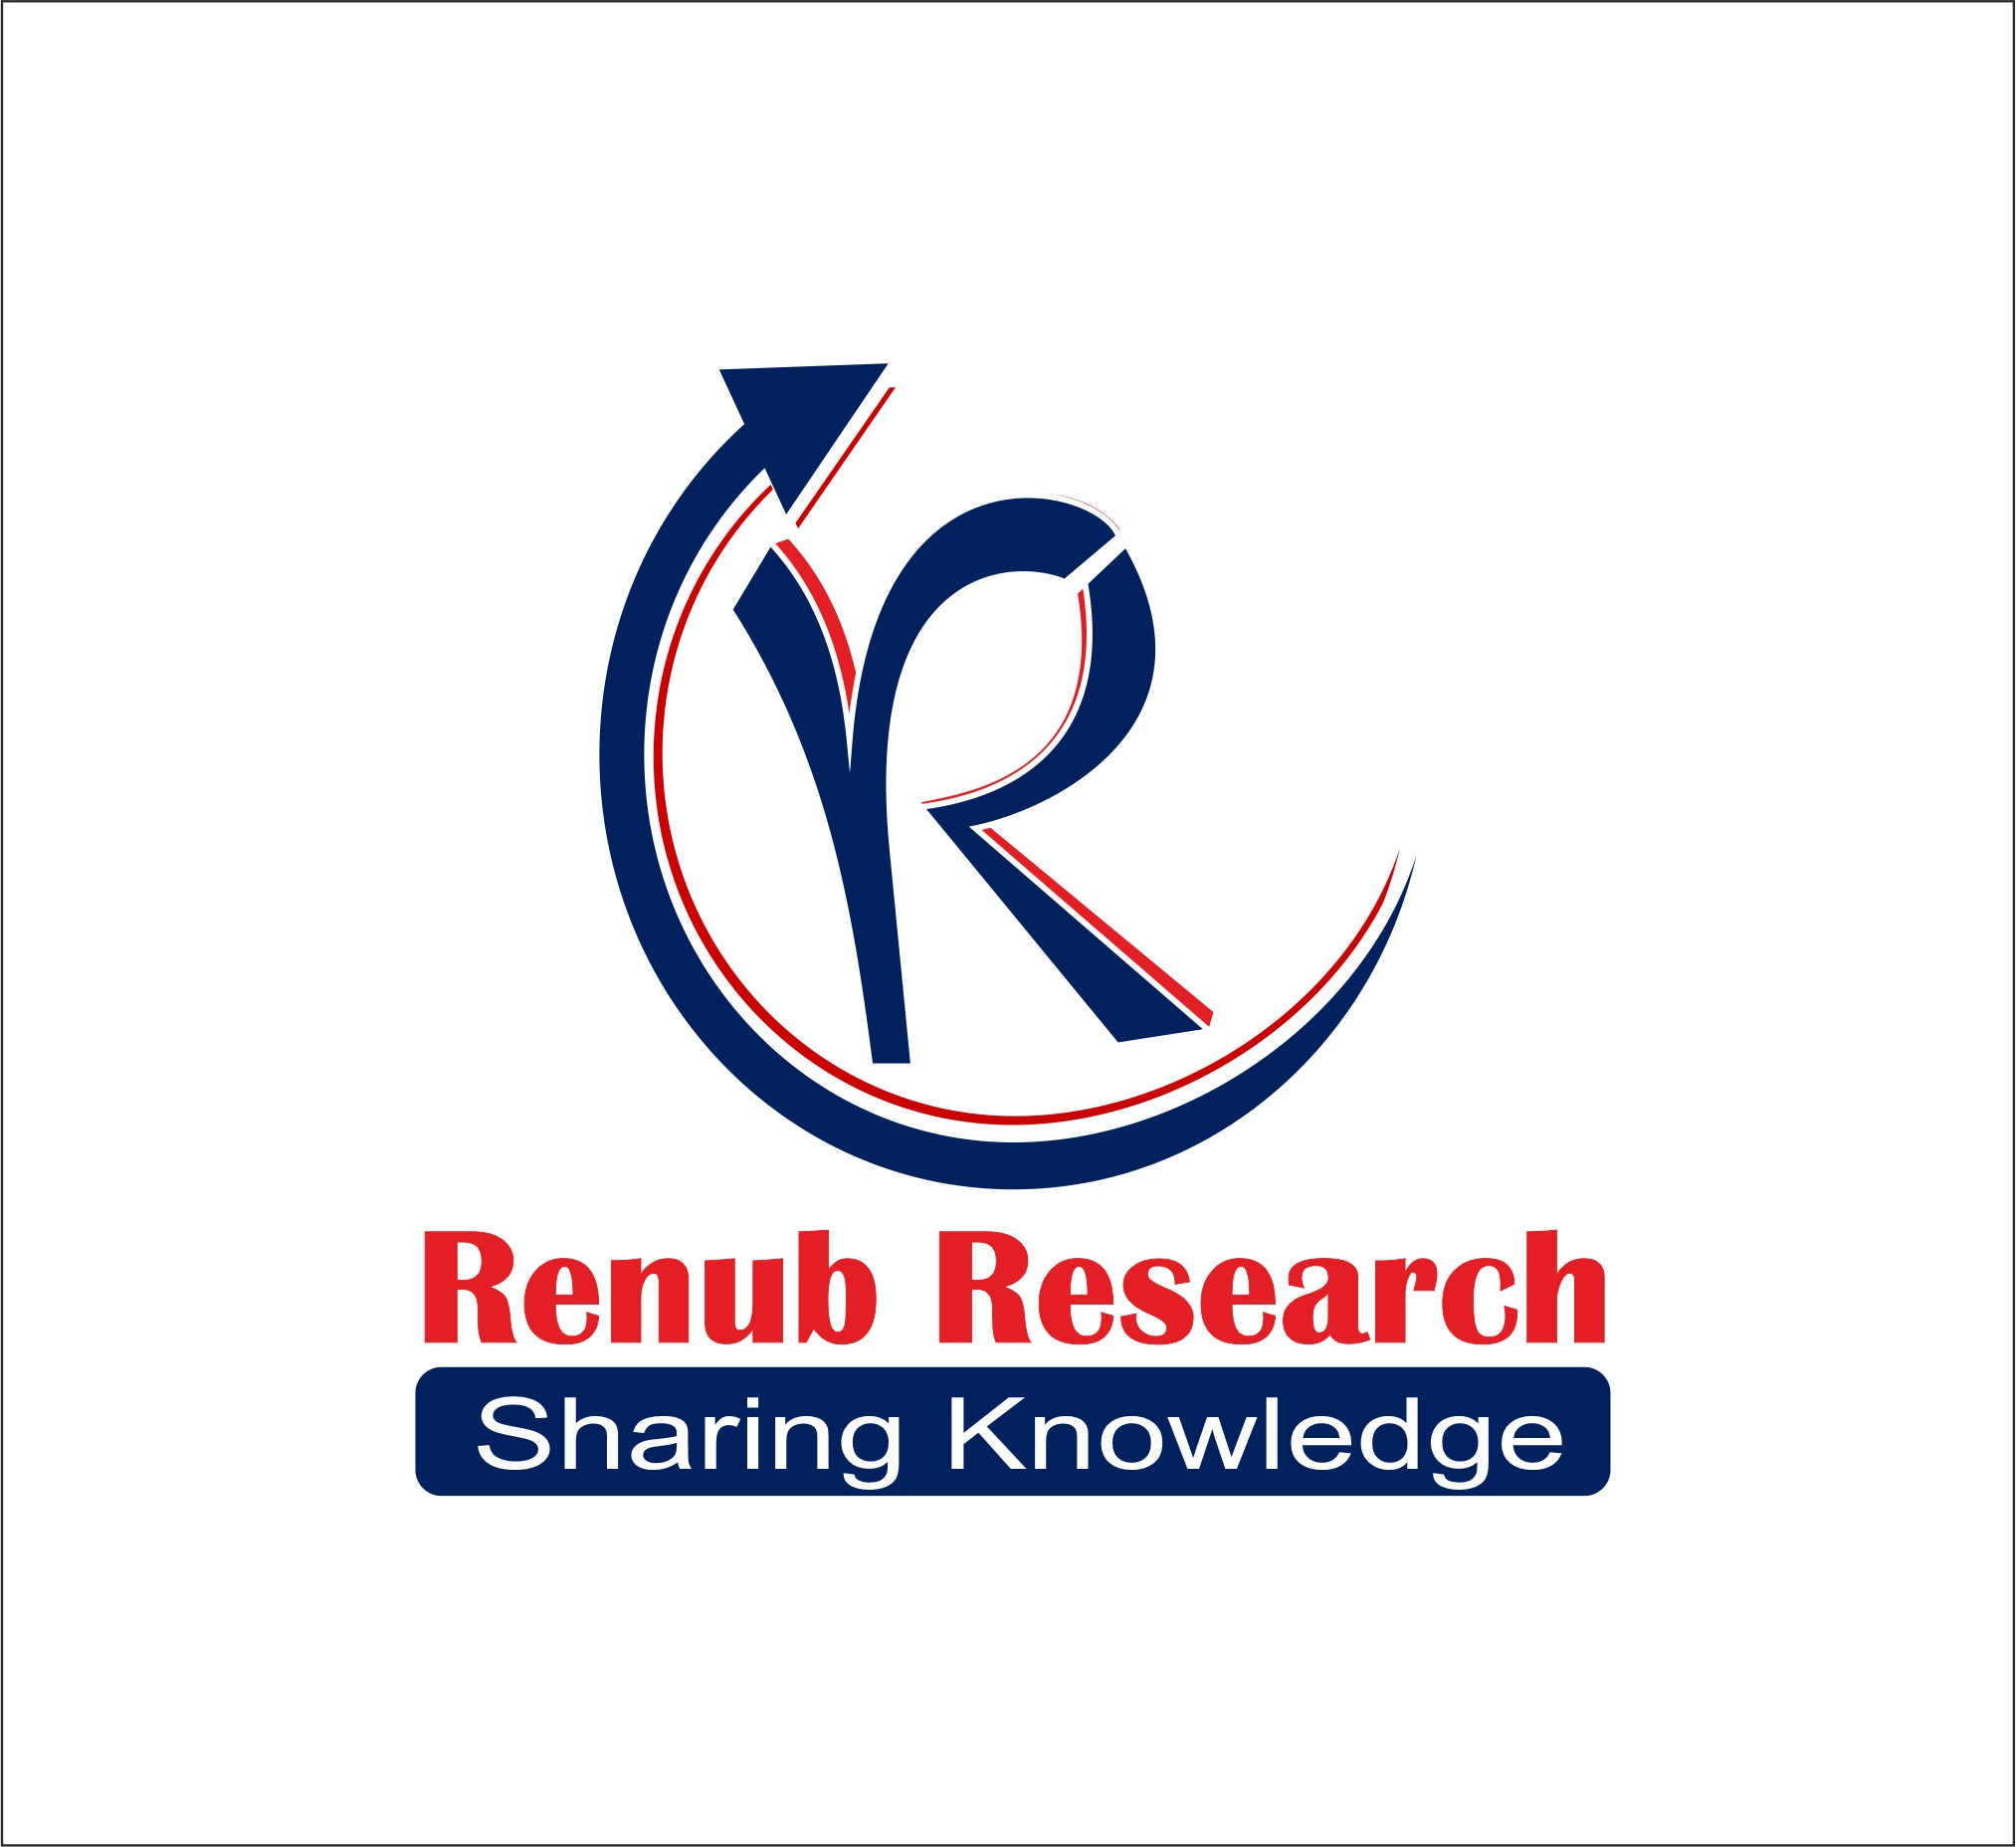 Global Shrimp Market is expected to be US$ 24.1 Billion by 2026 | Renub Research